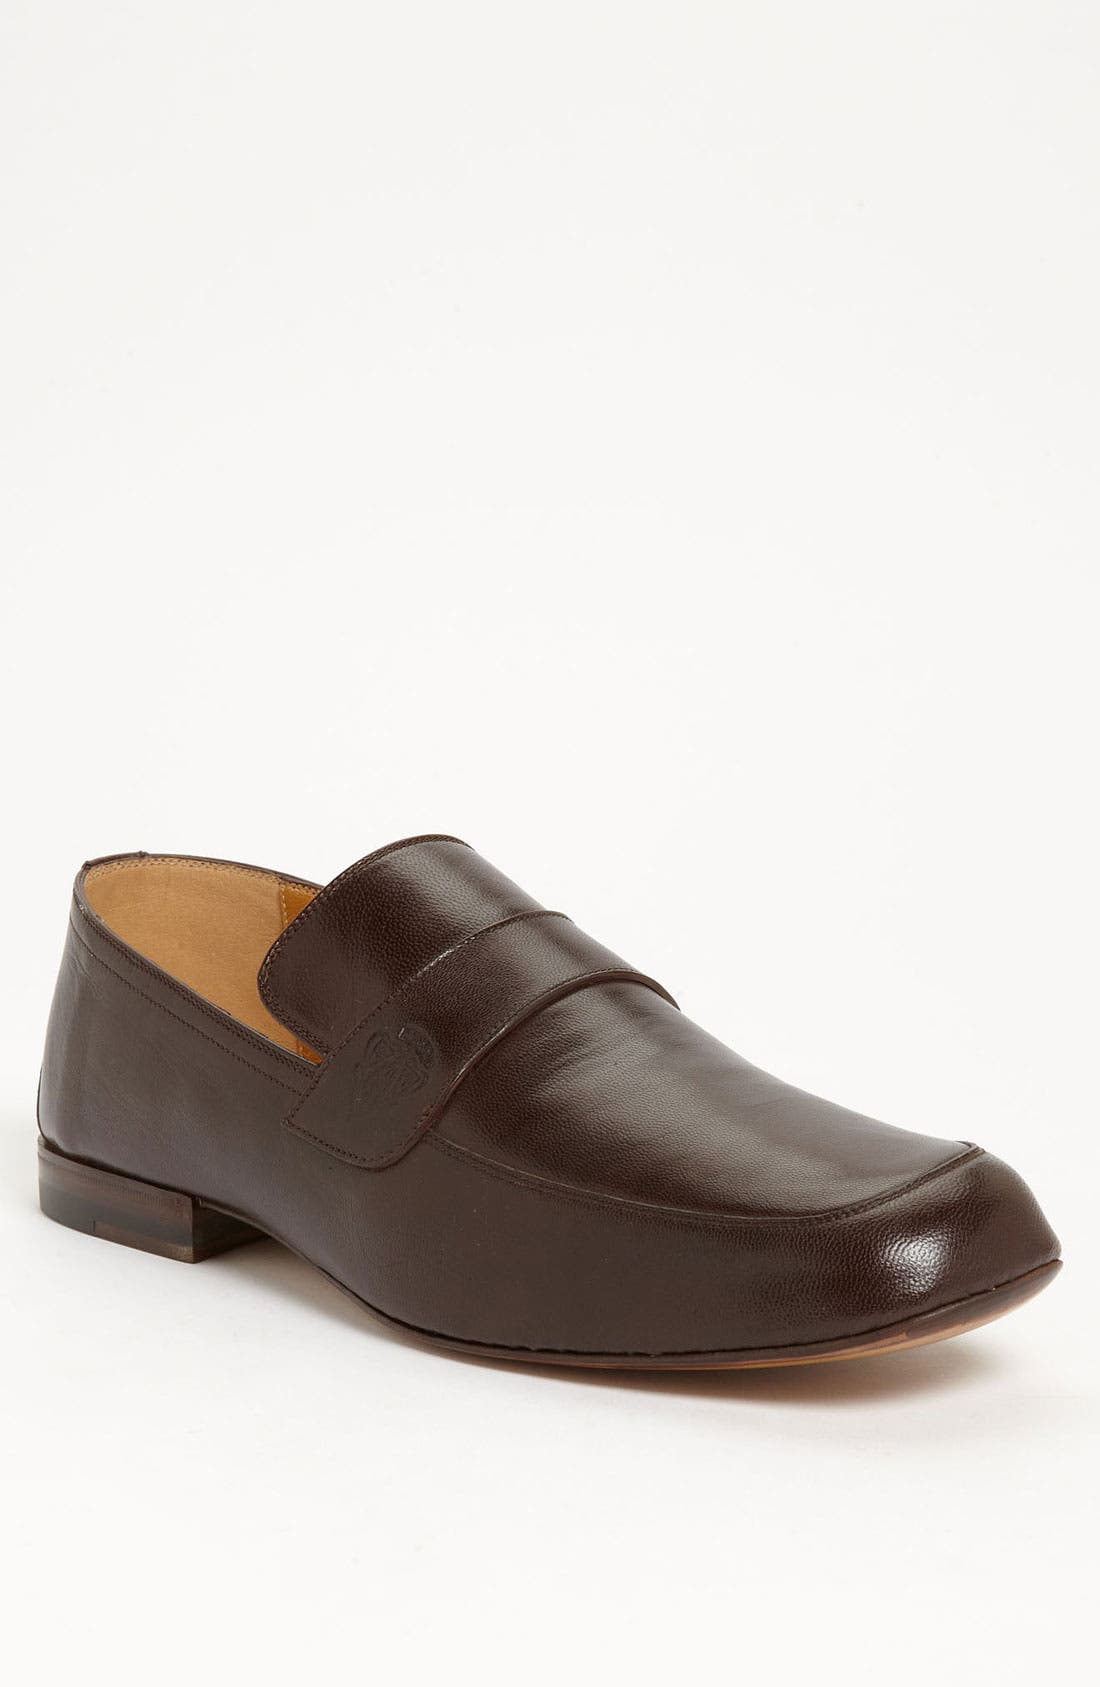 Alternate Image 1 Selected - Gucci 'Calvaert' Loafer